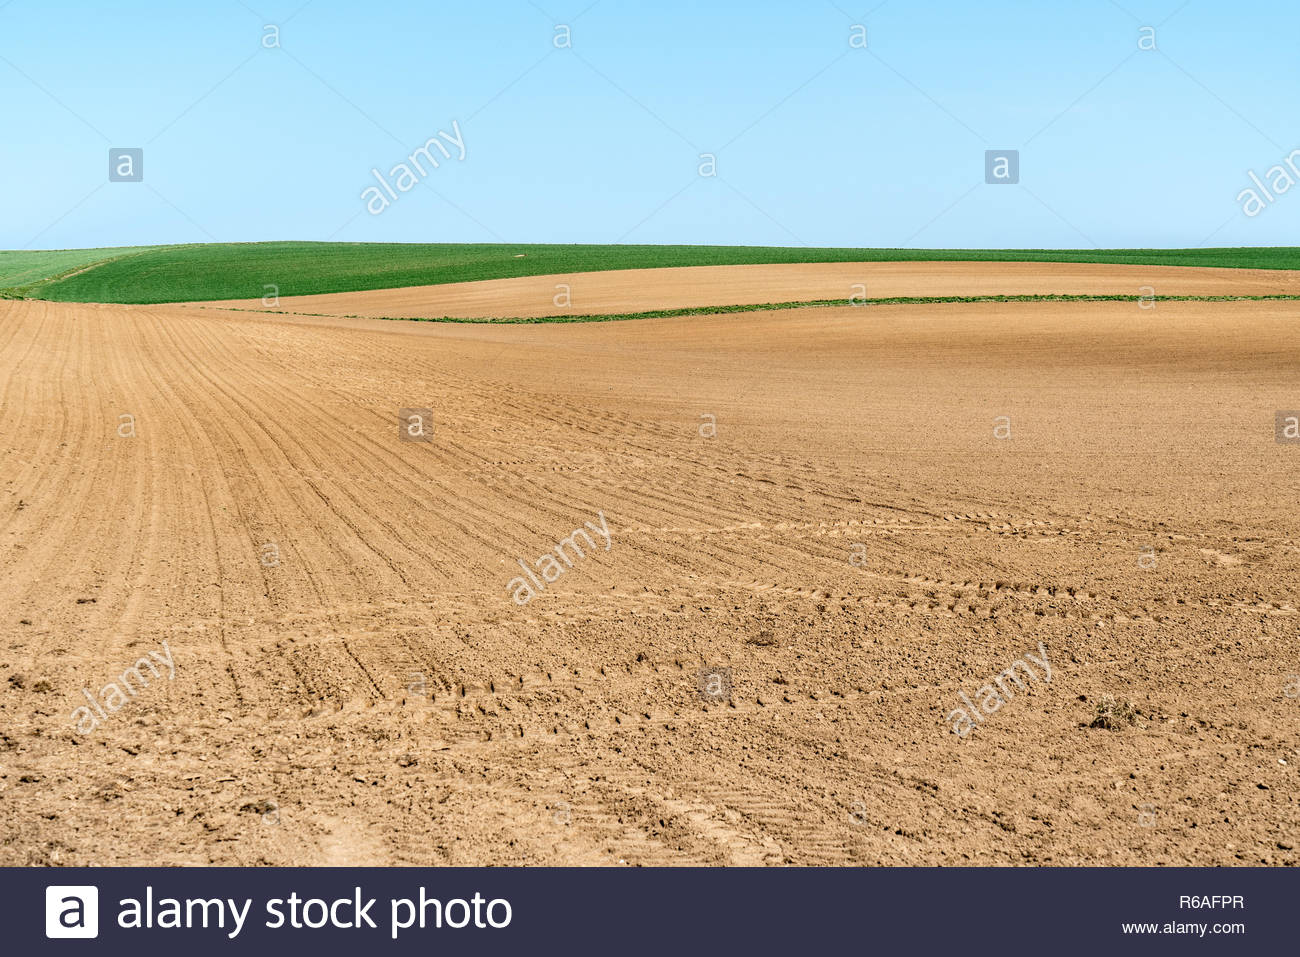 Fields In Intensive Agriculture Stock Photo: 227654639 - Alamy